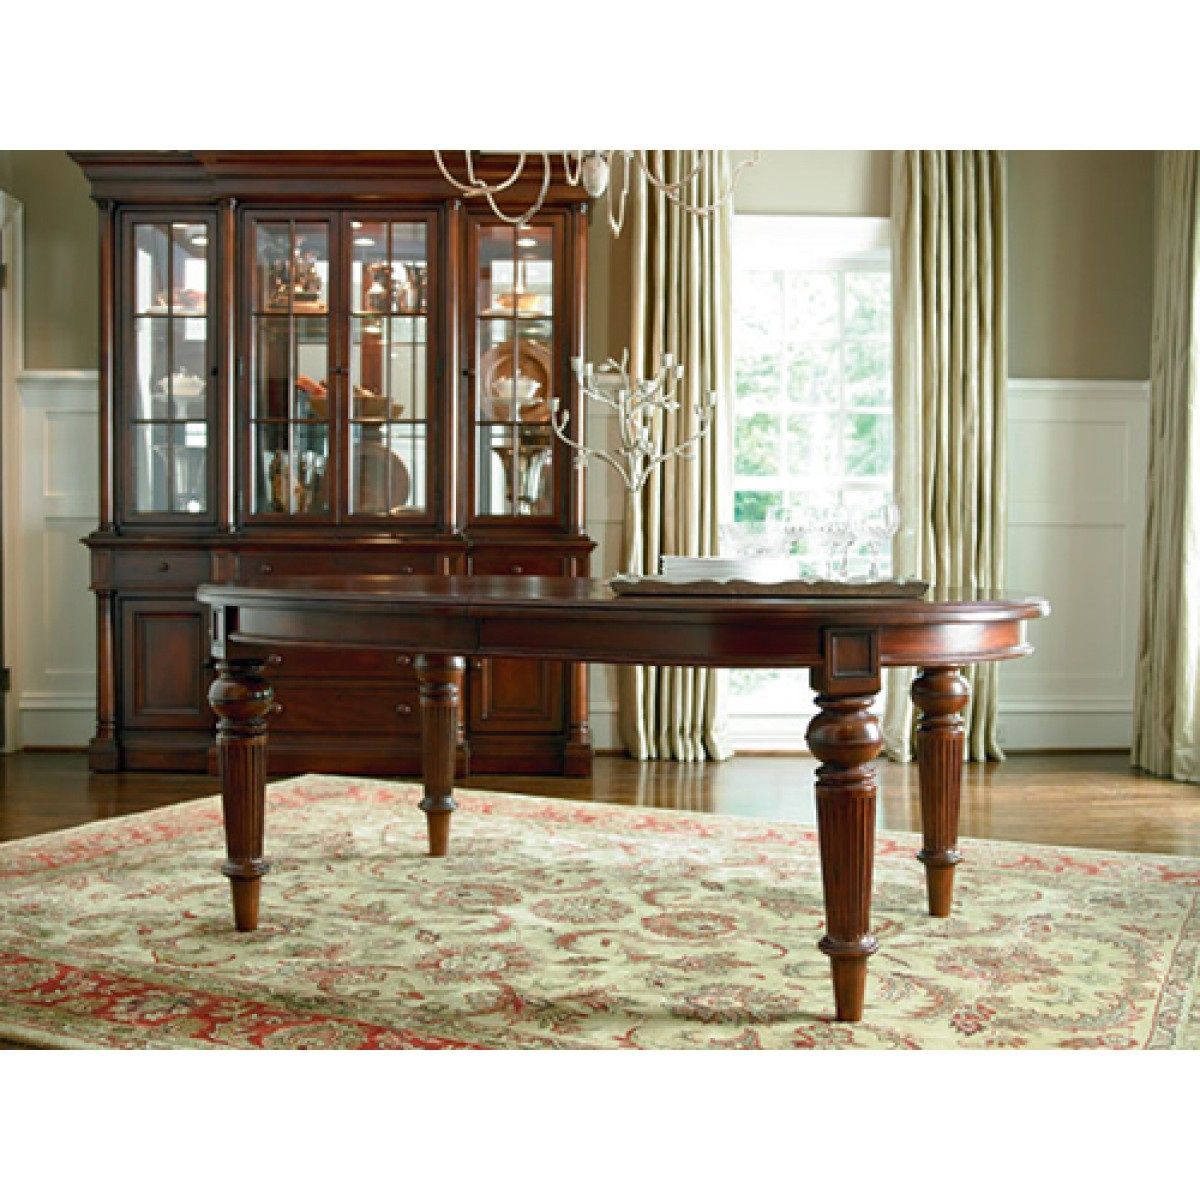 Beau 50+ Thomasville Dining Room Tables   Luxury Modern Furniture Check More At  Http:/